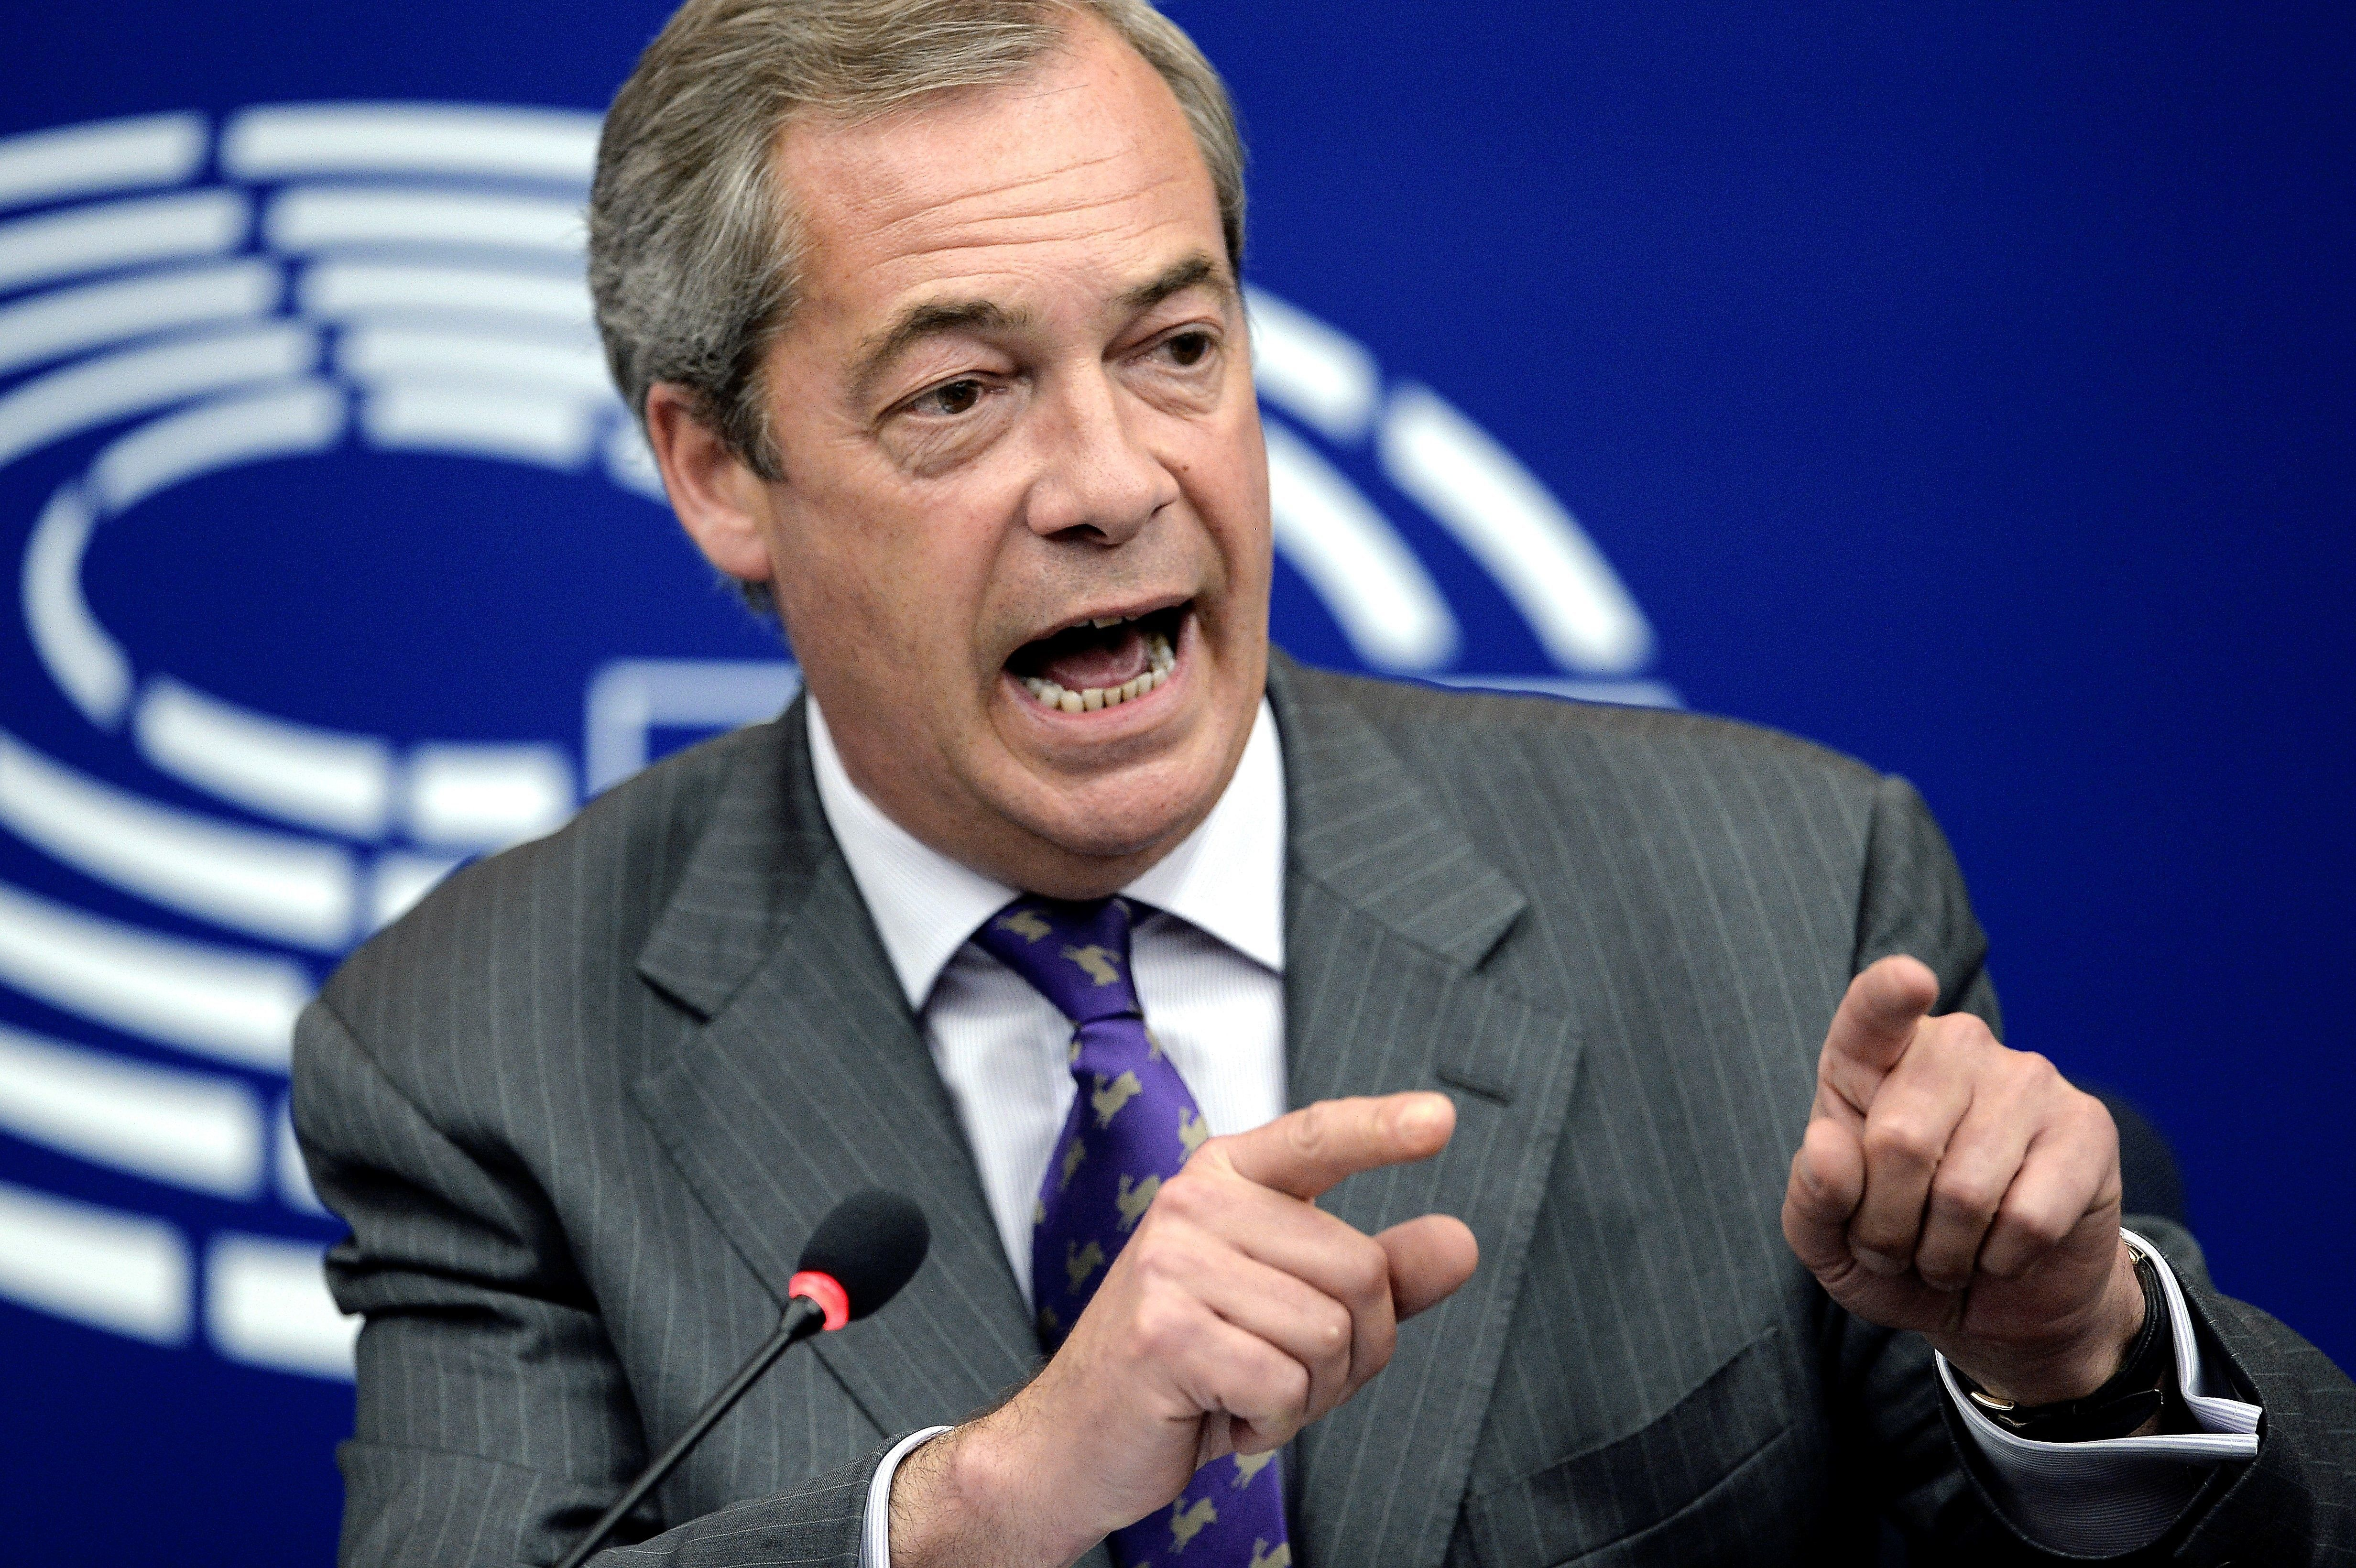 Nigel Farage Sparks Fierce Racism Row With 'Disgusting' Attack On President